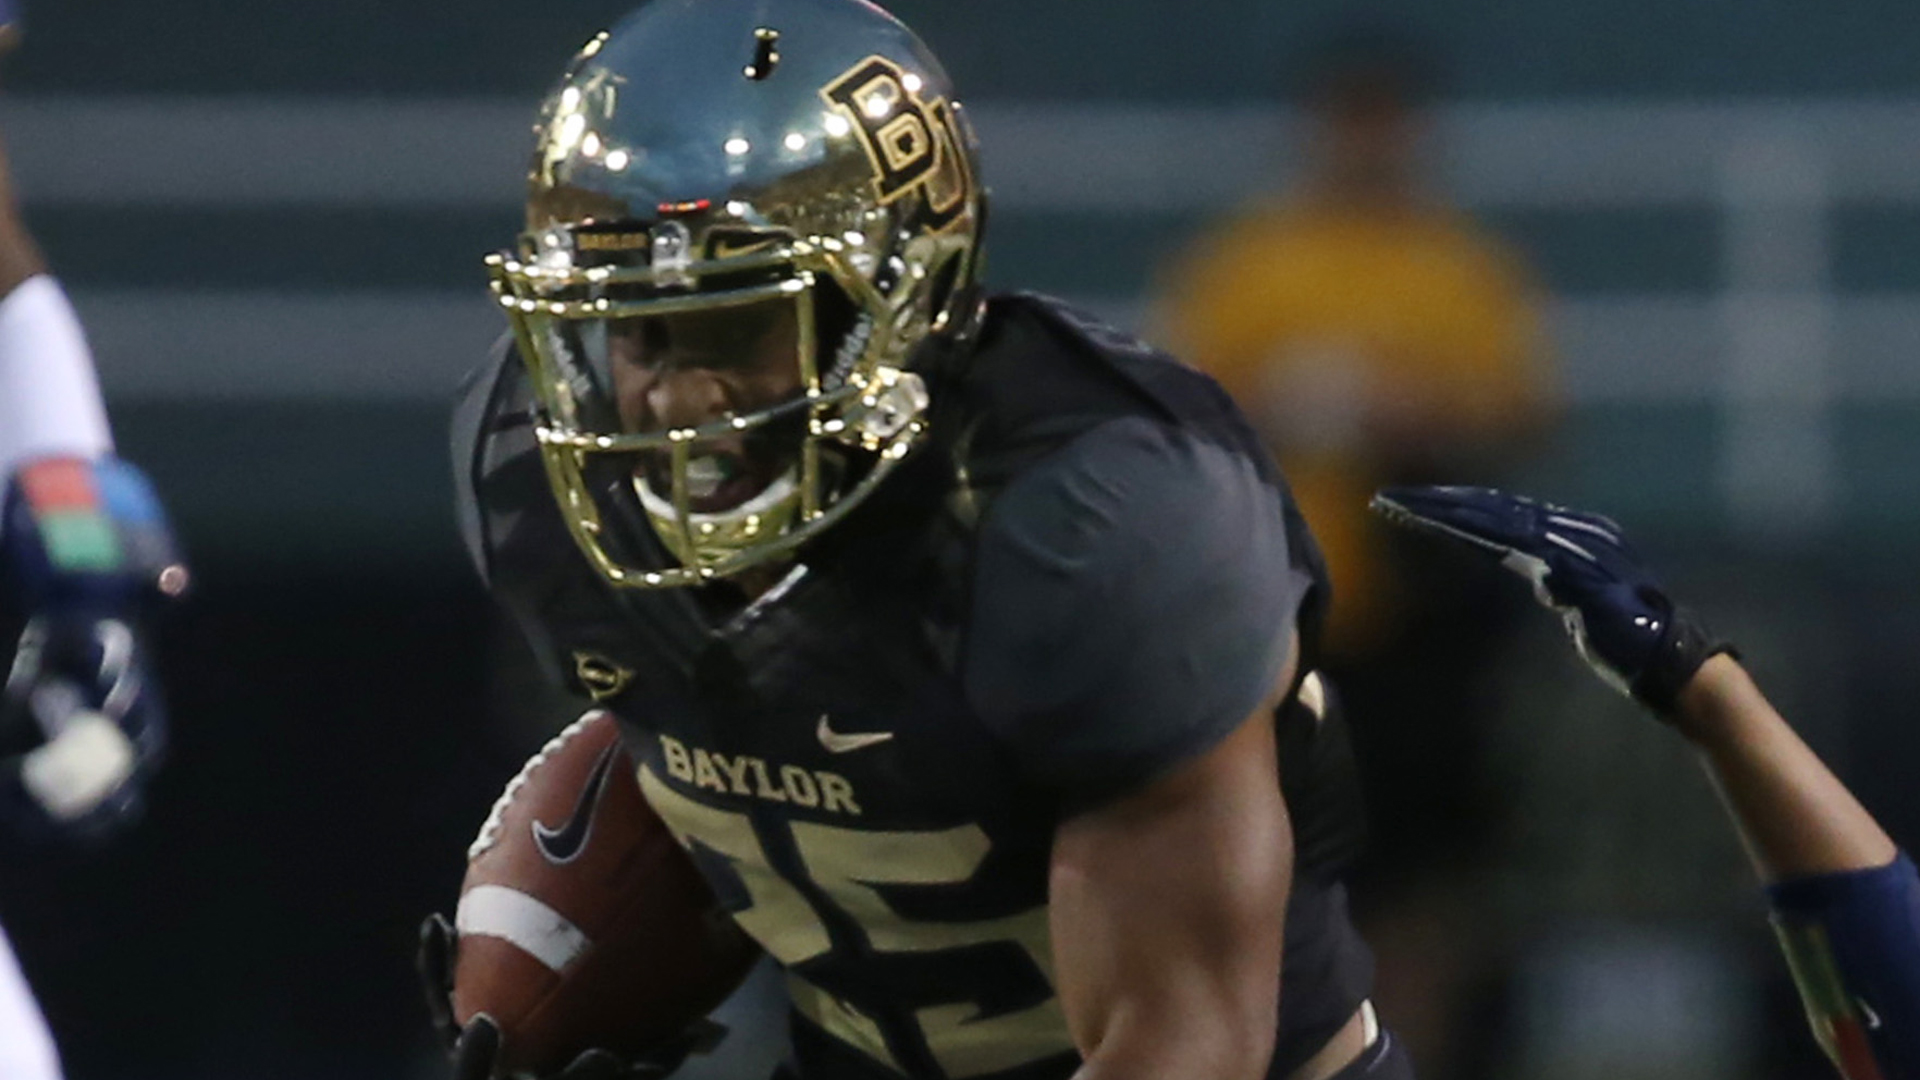 4034ead298c Baylor Bears win Sporting News fan vote for college football's best uniform    Sporting News